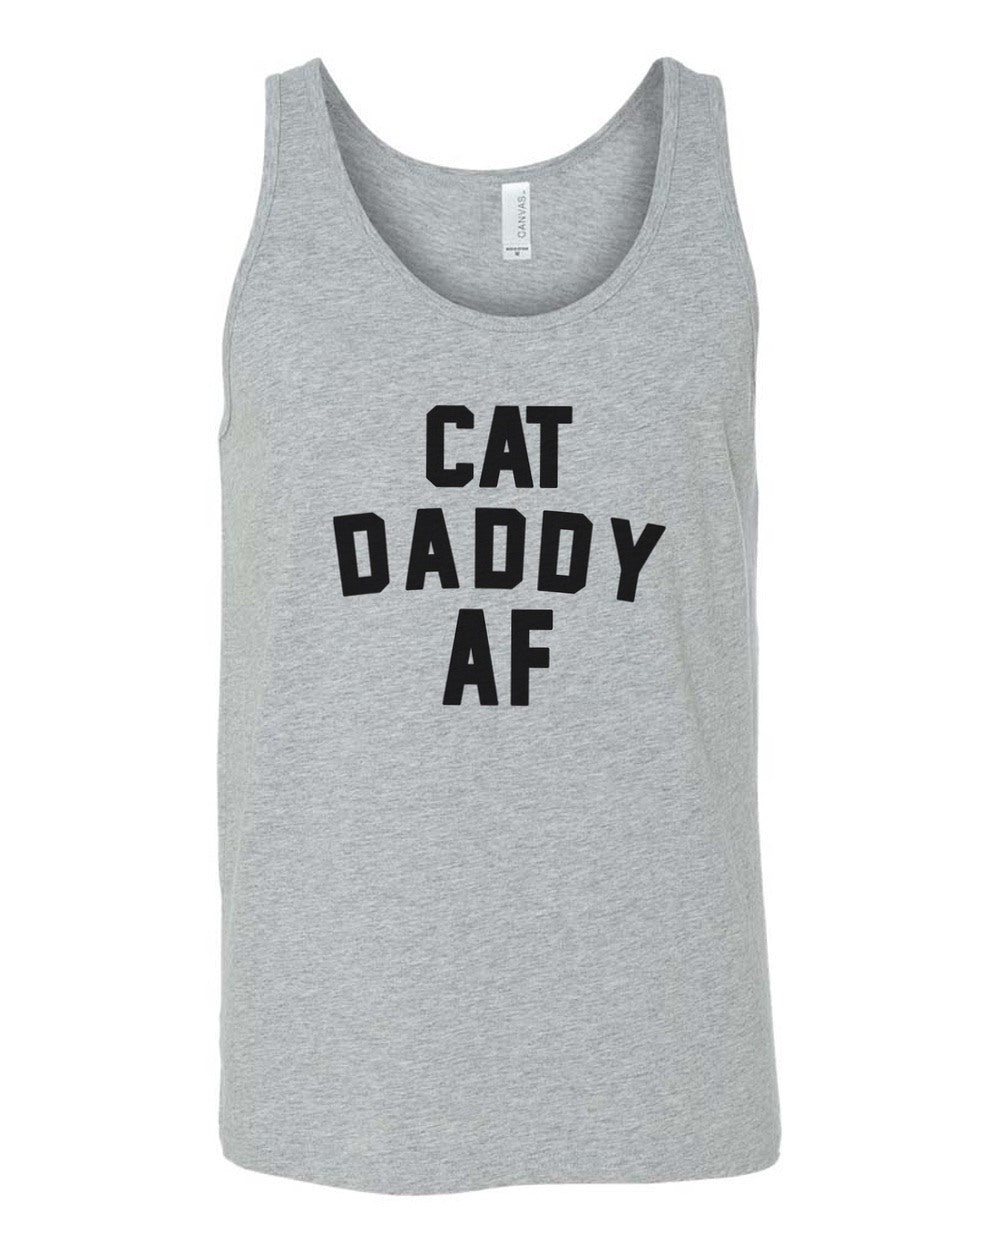 bc9fcf77 Men's | Cat Daddy AF | Tank Top – Arm The Animals Clothing Co.